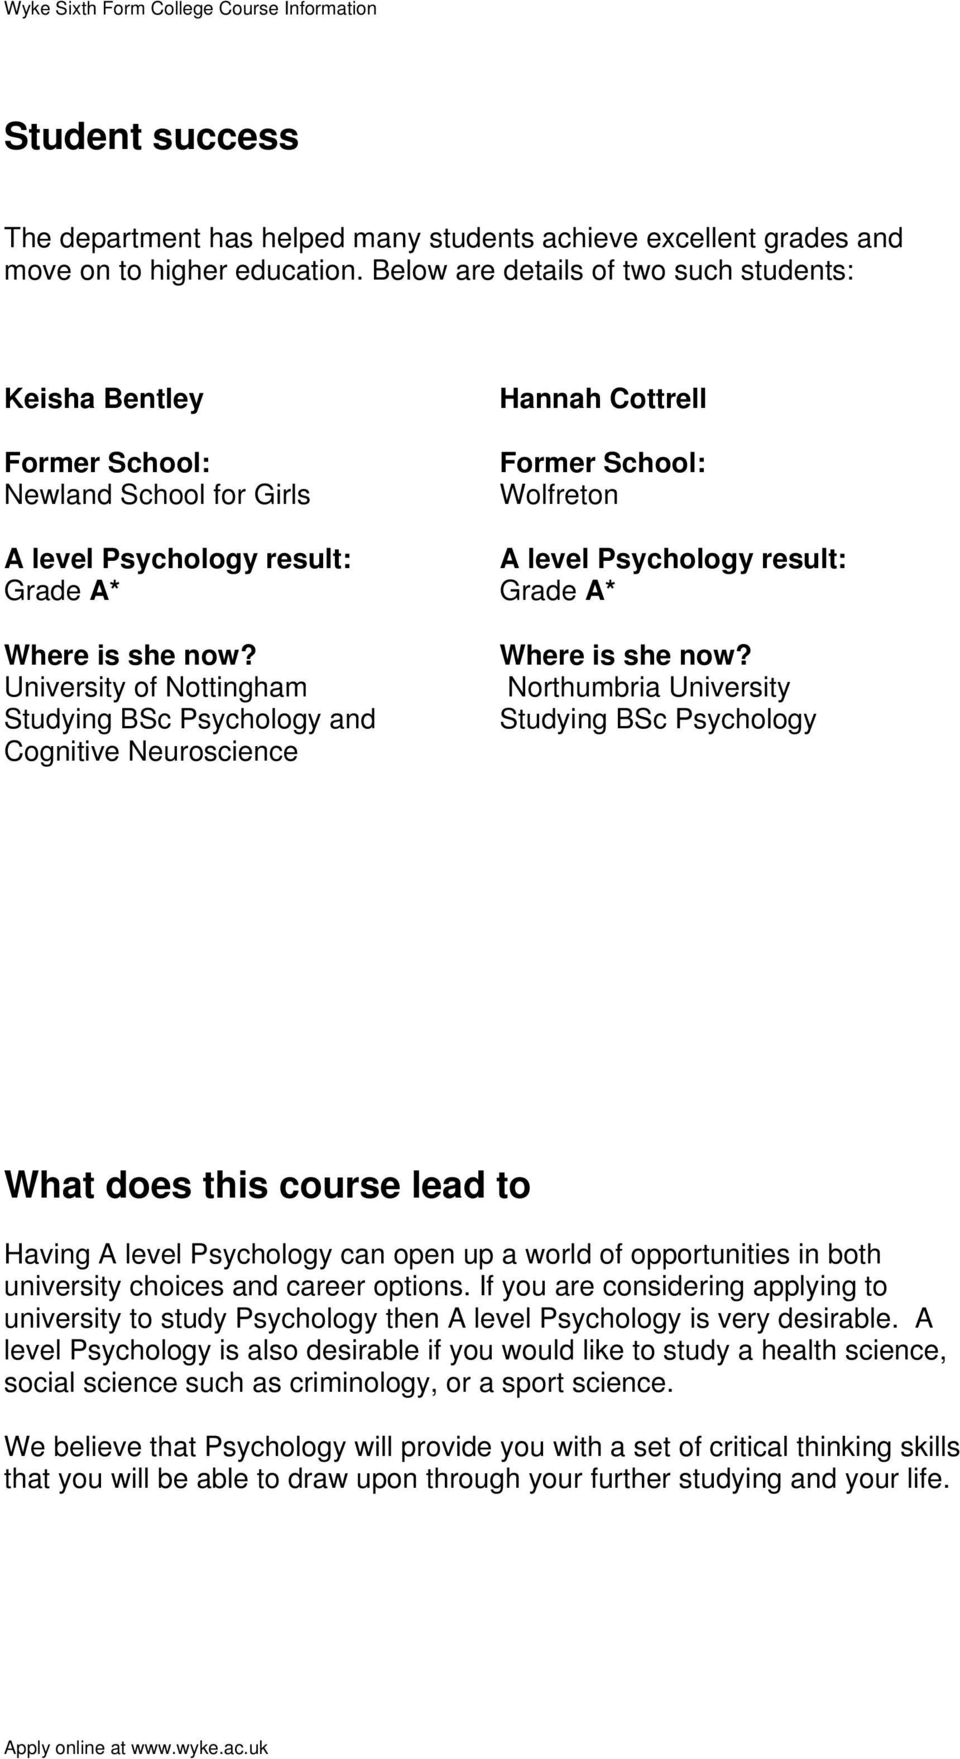 University of Nottingham Studying BSc Psychology and Cognitive Neuroscience Hannah Cottrell Former School: Wolfreton A level Psychology result: Grade A* Where is she now?